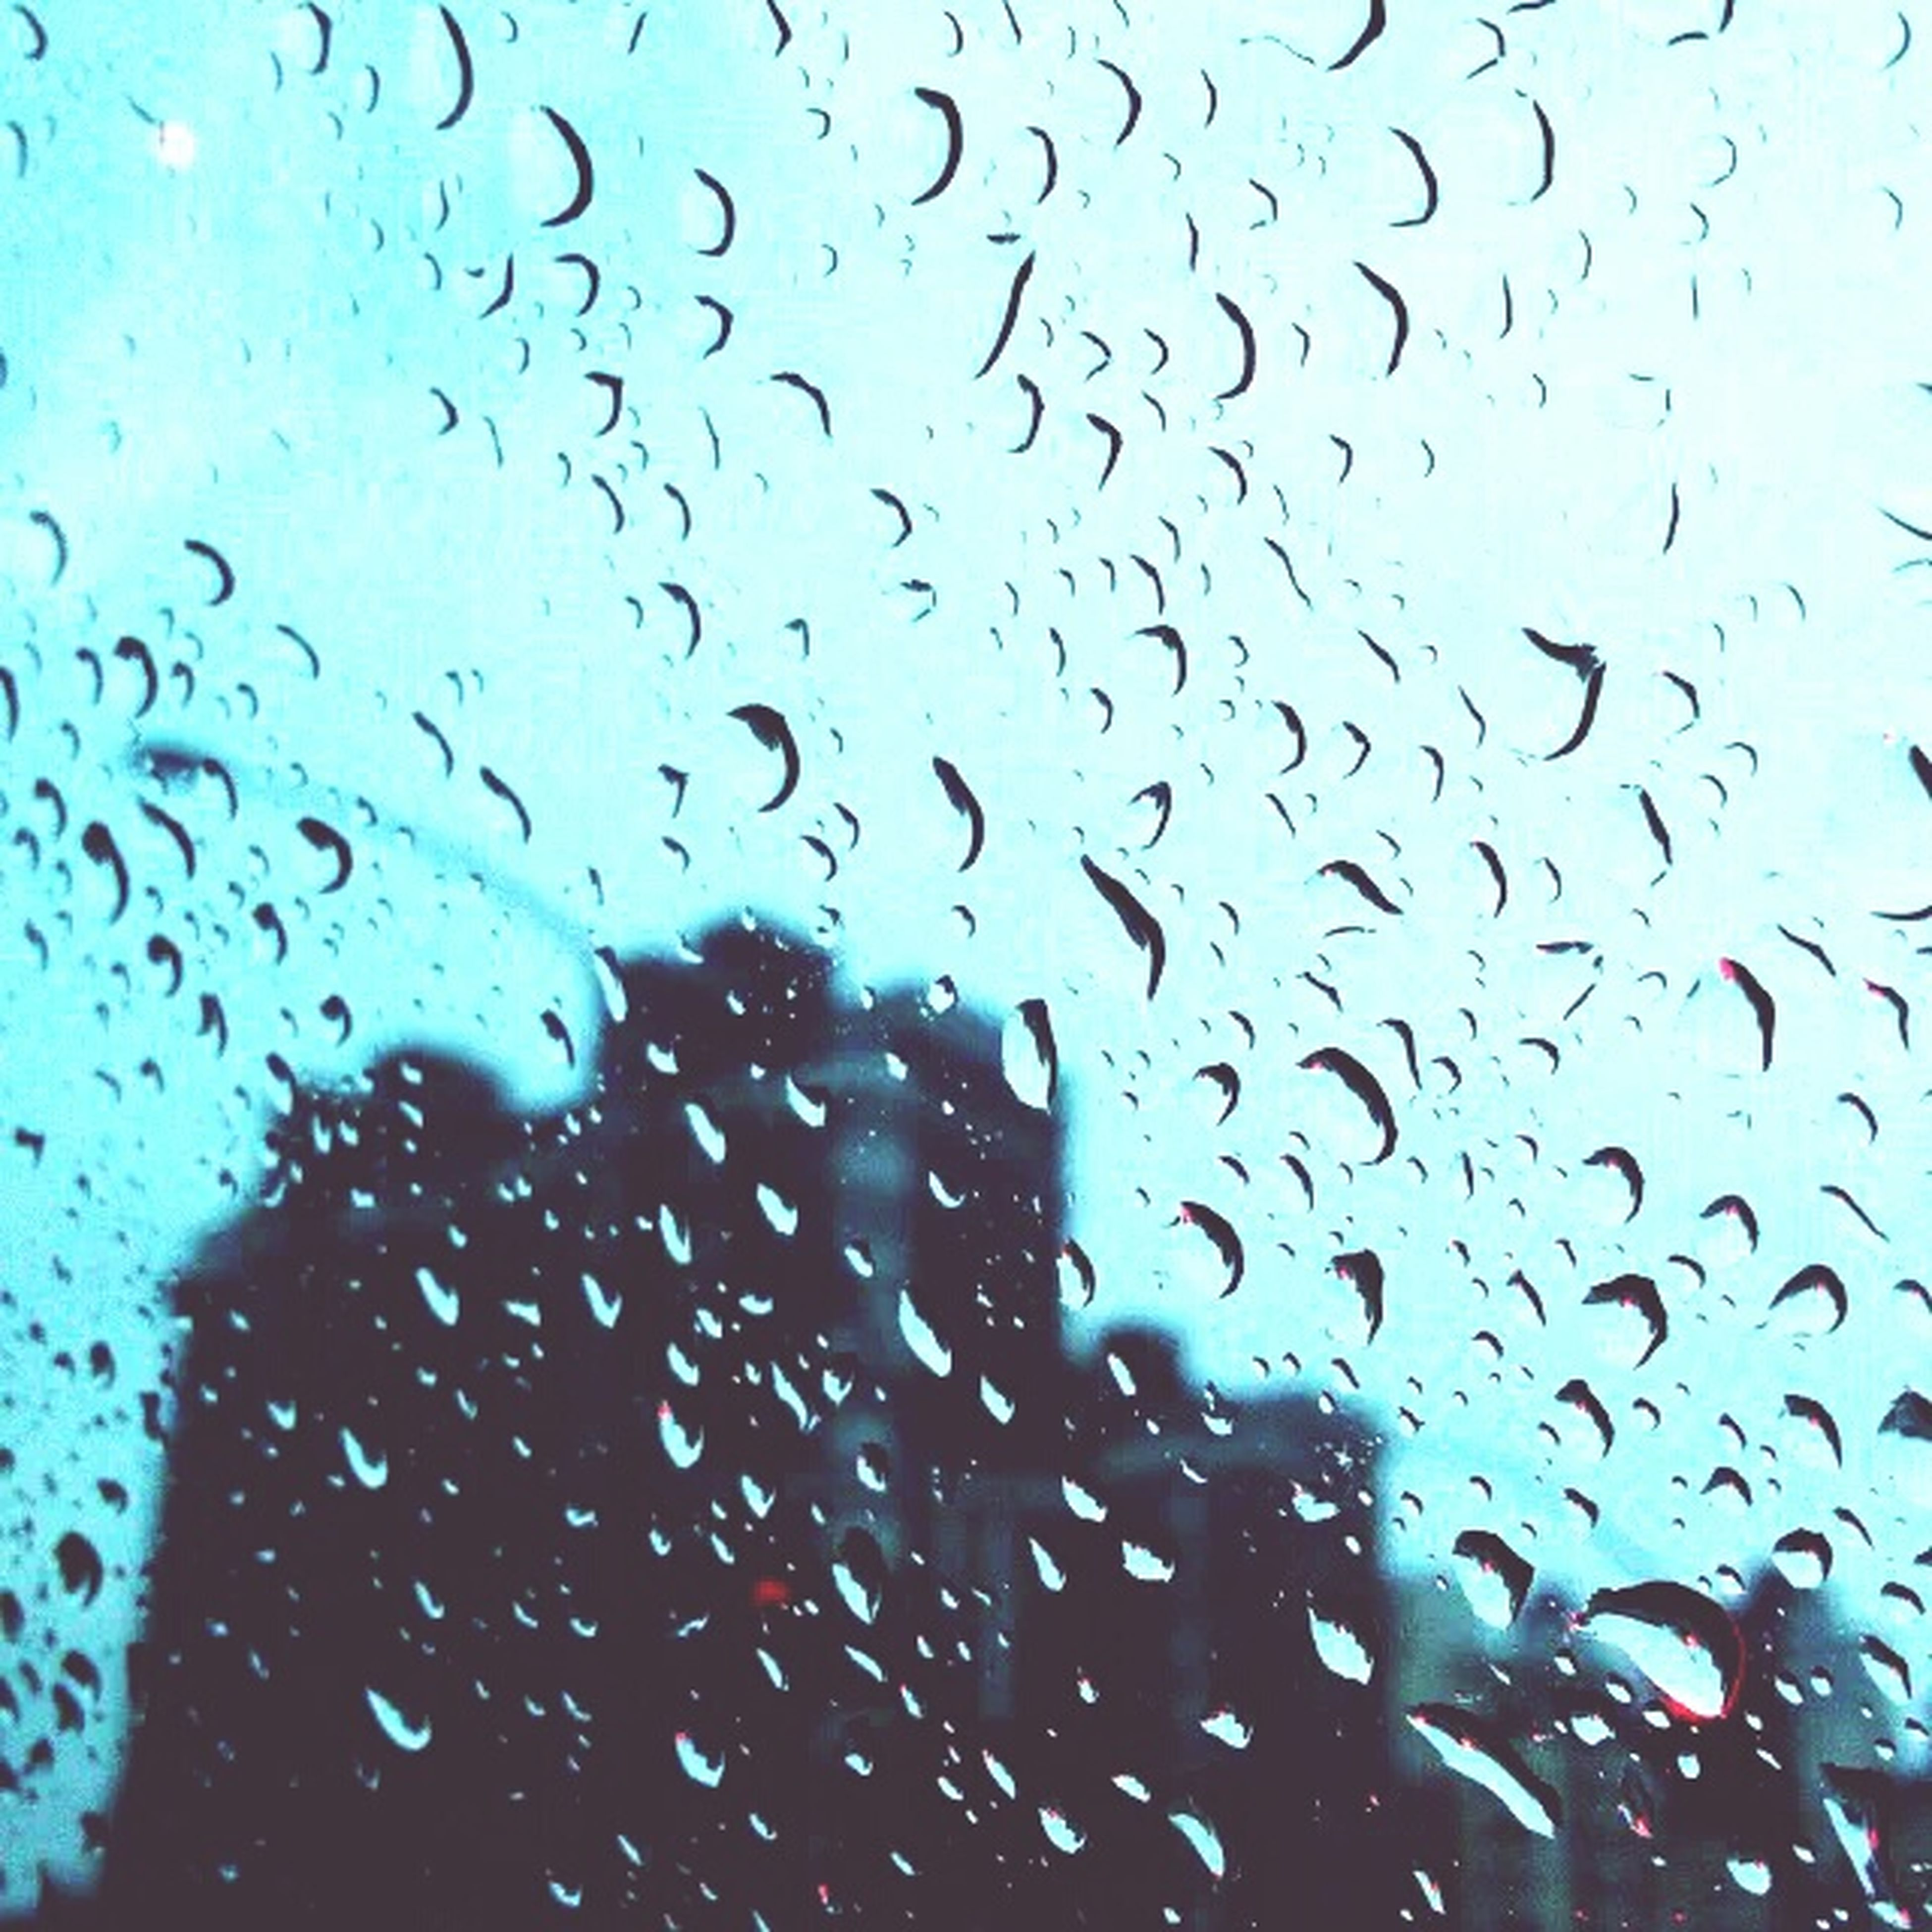 drop, wet, window, rain, water, transparent, indoors, glass - material, sky, raindrop, weather, backgrounds, full frame, season, glass, focus on foreground, silhouette, dusk, cloud - sky, close-up